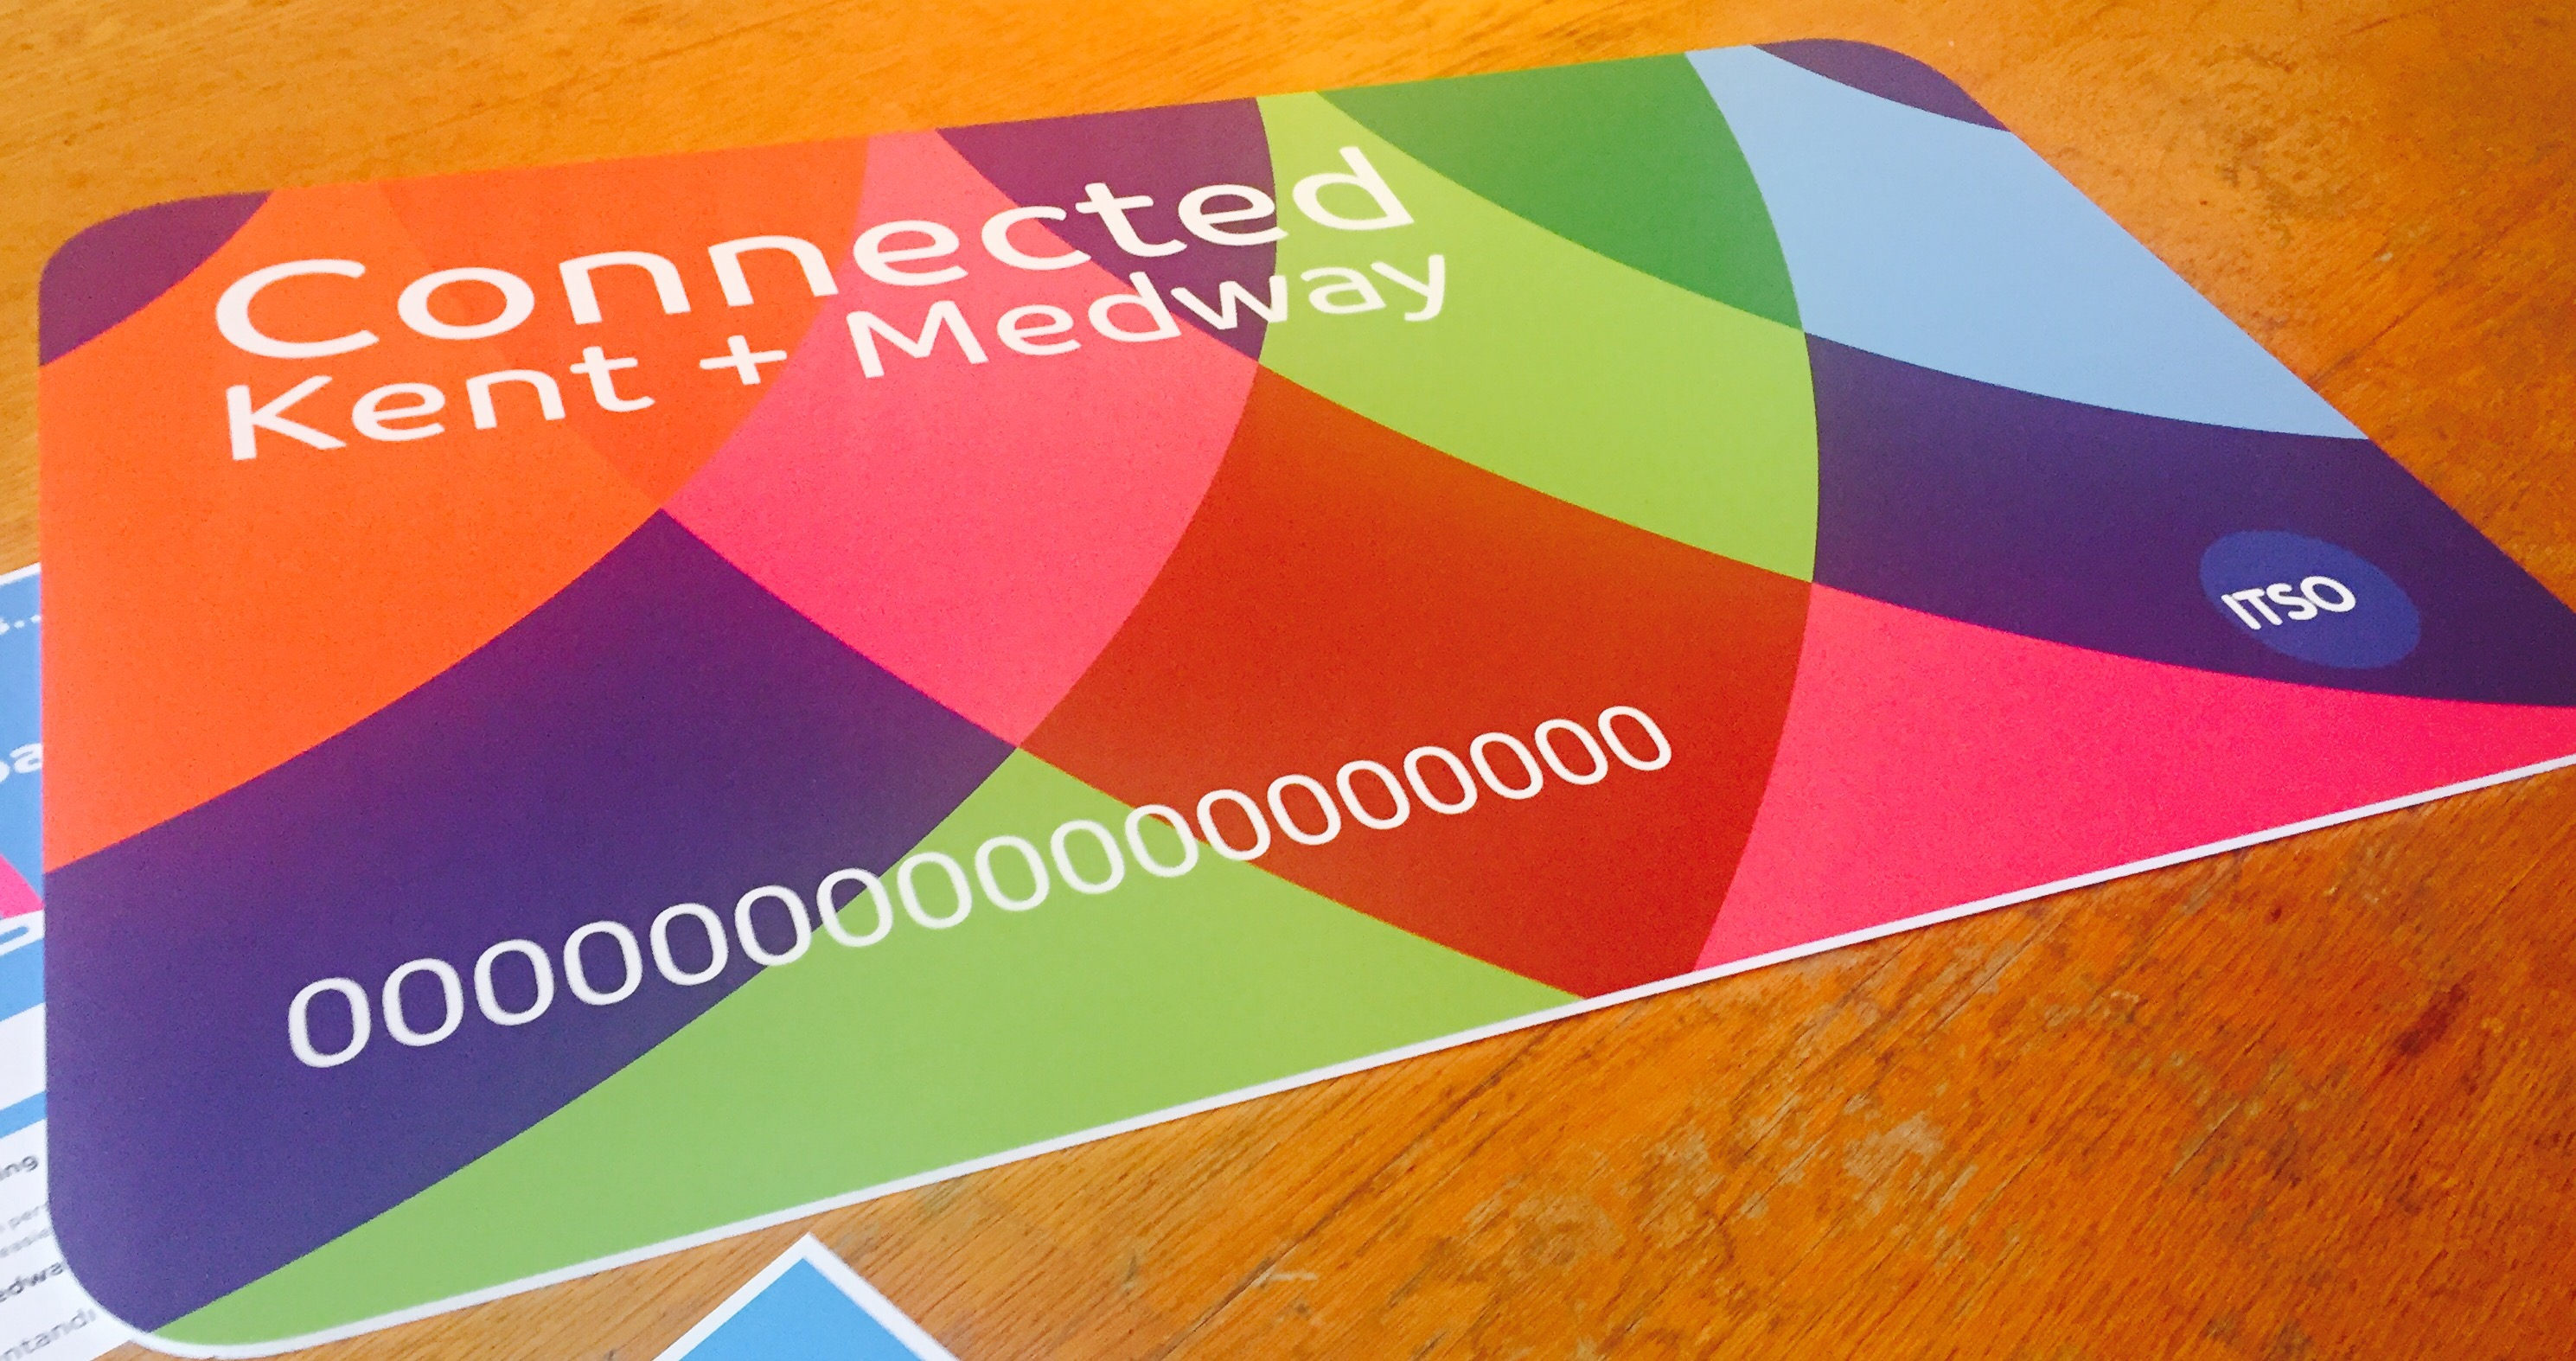 New Smartcard for Kent launches allowing pay-as-you-go travel